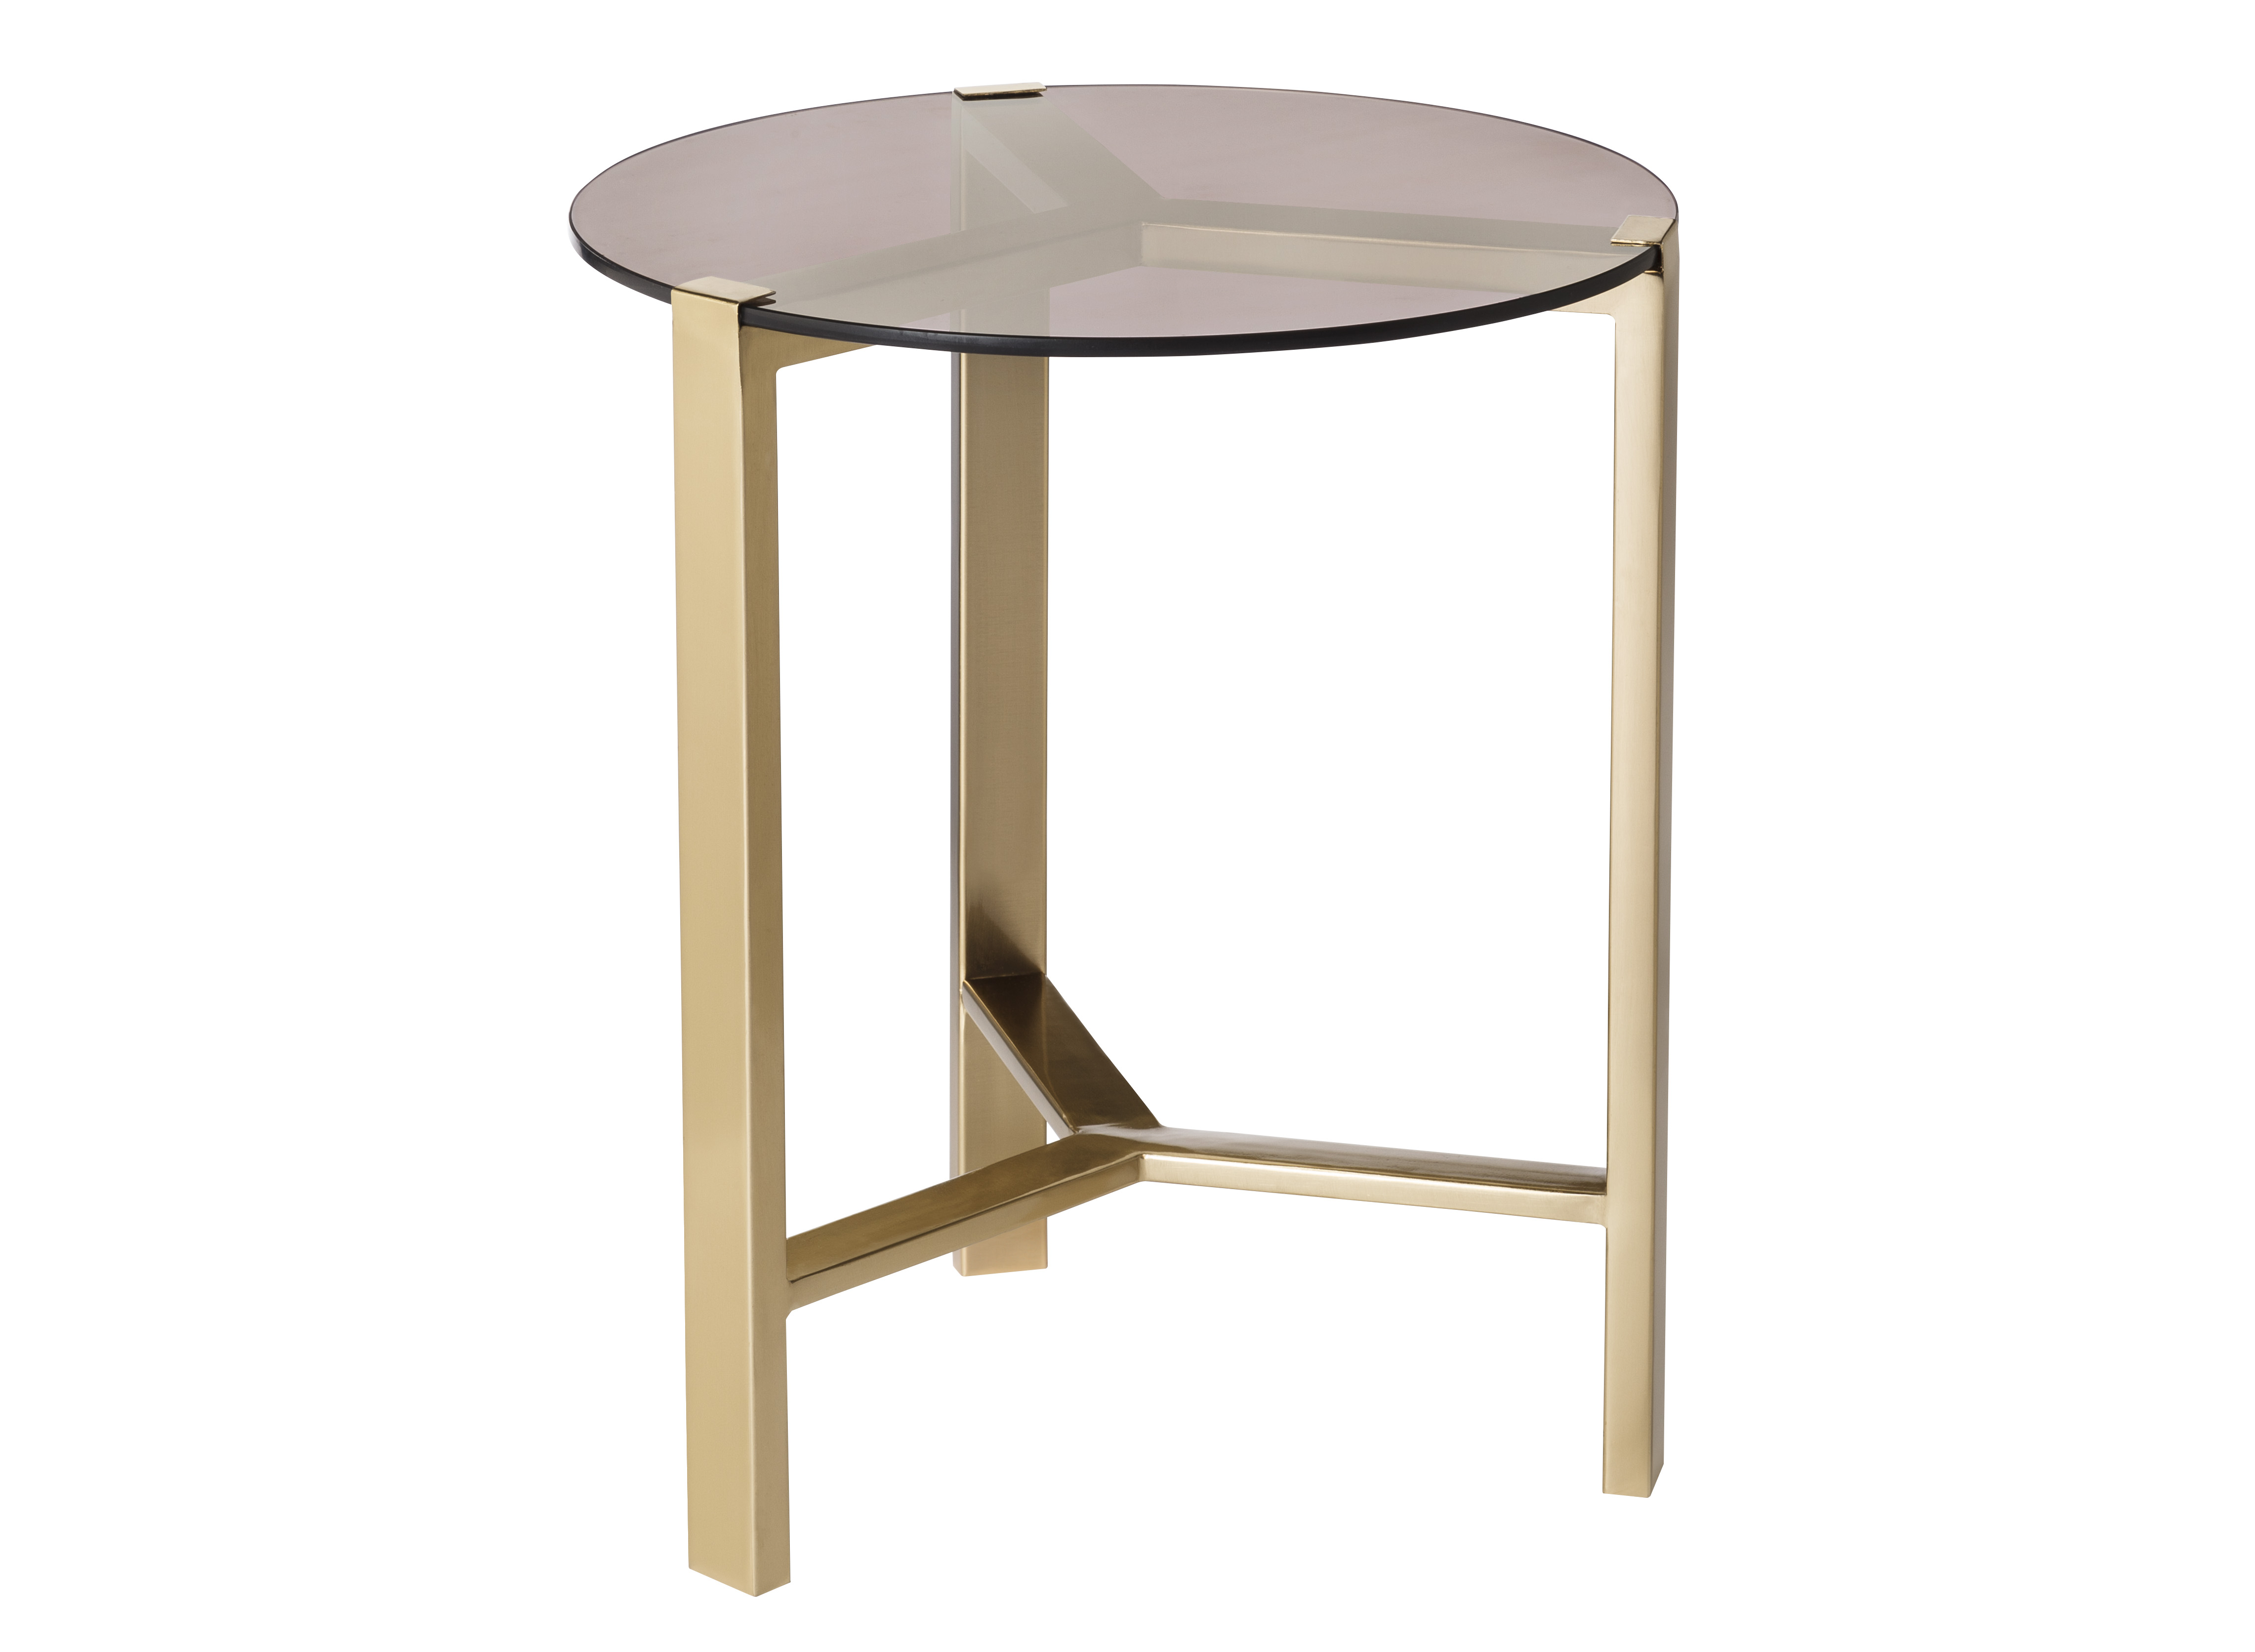 nate berkus end table tops look round gold accent with marble top target fall holiday pretty storage boxes ikea bunk beds linen placemats and napkins dining room furniture grill